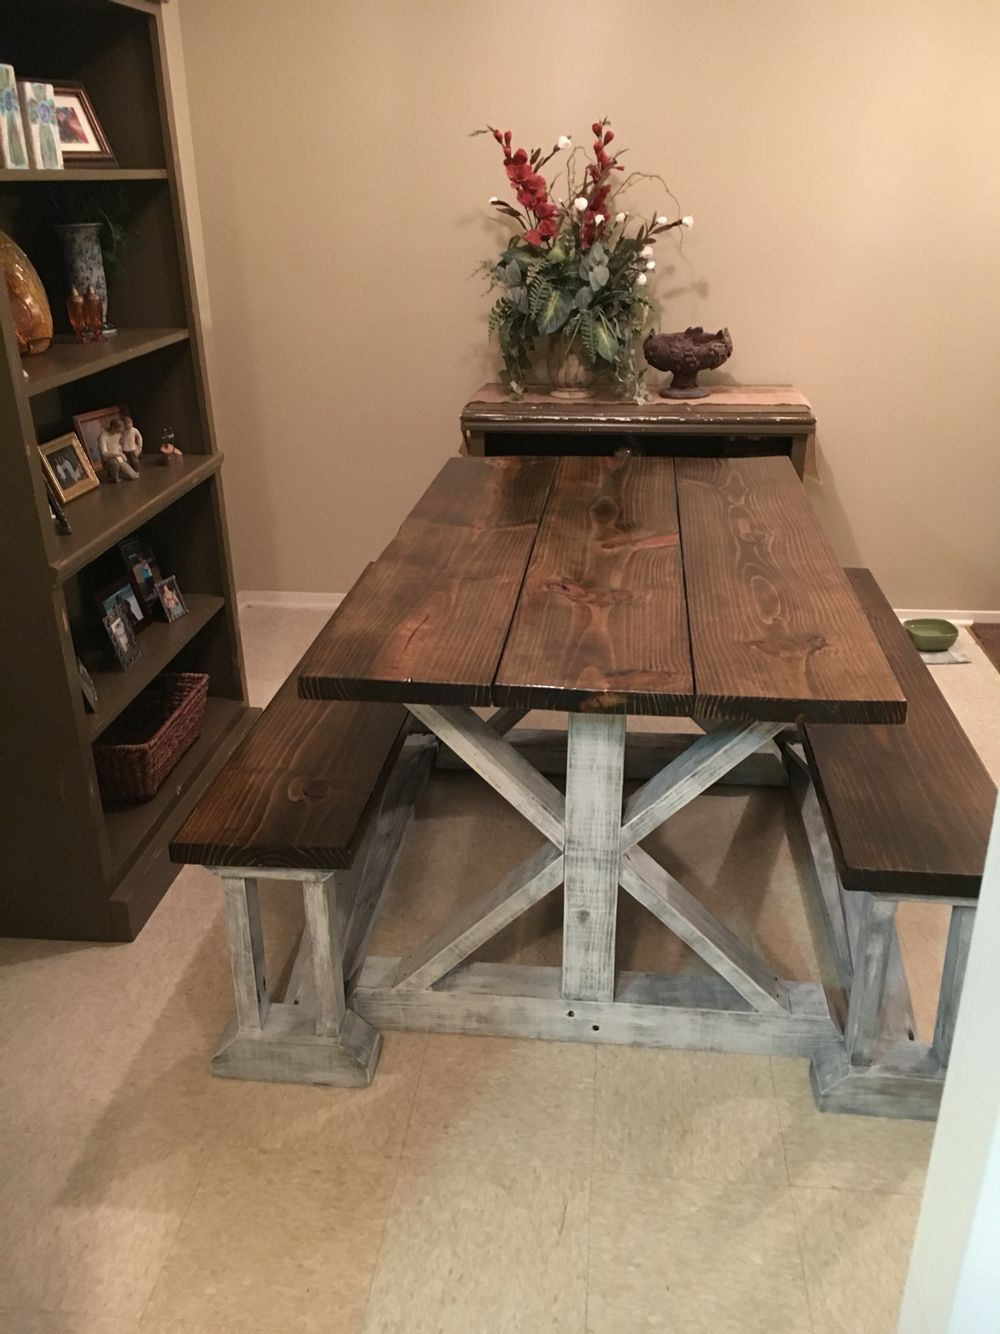 Pin by Susie Weaver on home | Farmhouse table with bench ...